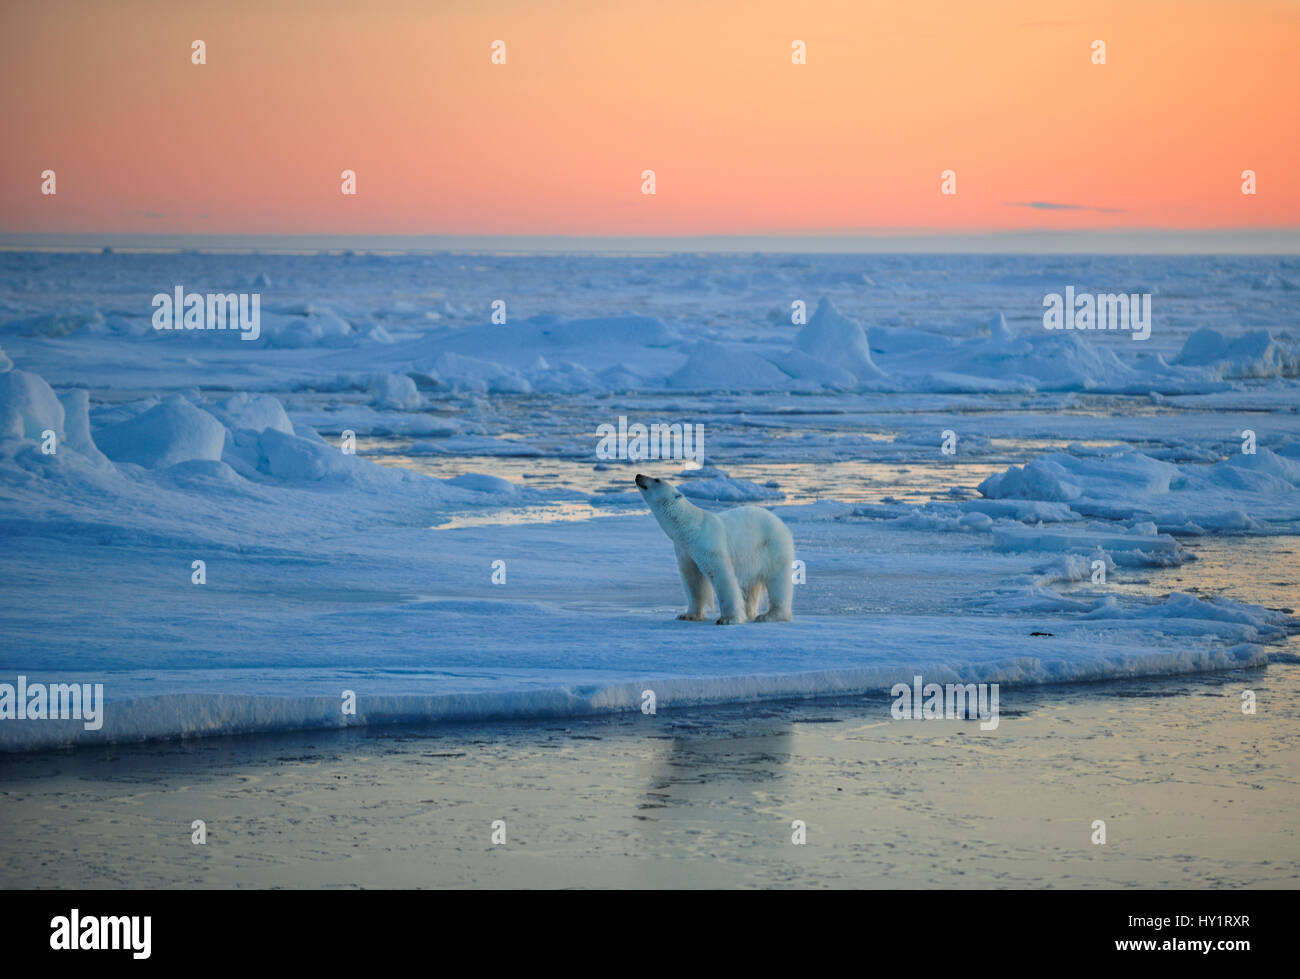 RF- Polar Bear (Ursus maritimus) on pack ice, sniffing the air at sunset, Svalbard, Norway, September 2009. Endangered - Stock Image